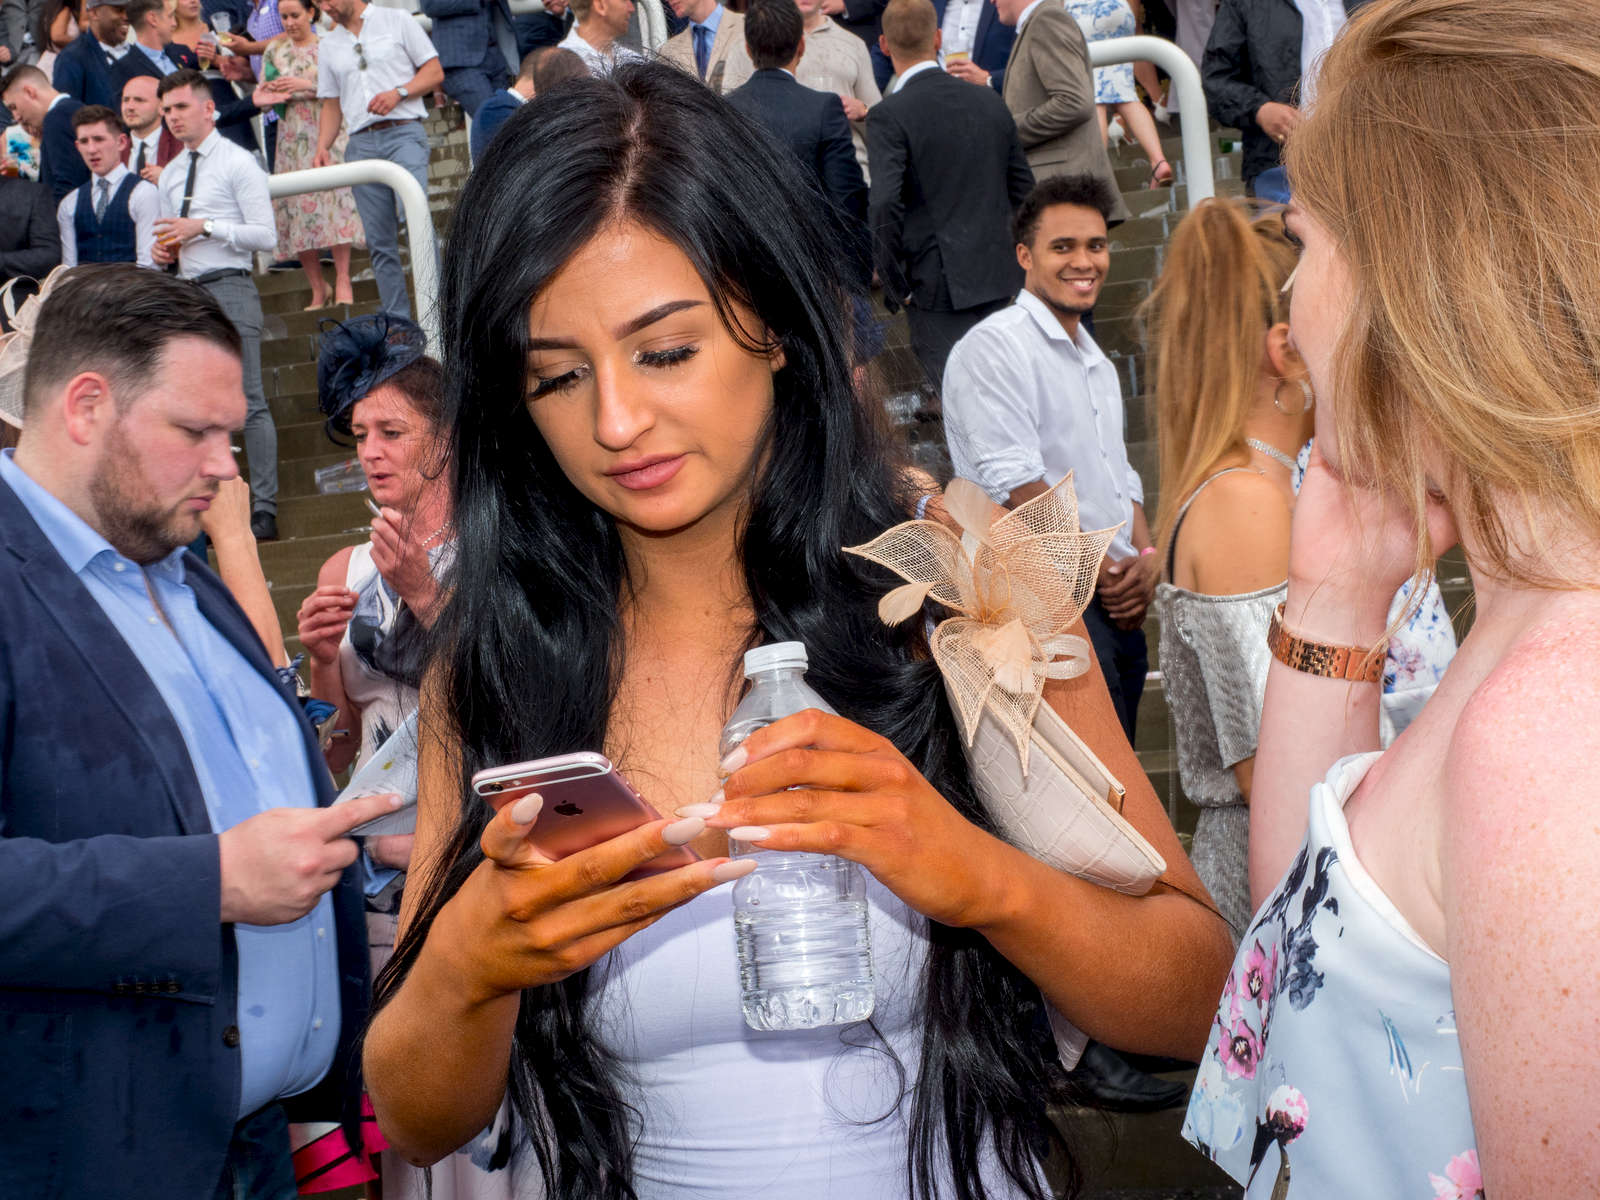 A young female visitor to Epsom shows evidence of using fake tan.Ladies' Day is traditionally held on the first Friday of June, a multitude of ladies and gents head to Epsom Downs Racecourse to experience a day full of high octane racing, music, glamour and fashion.